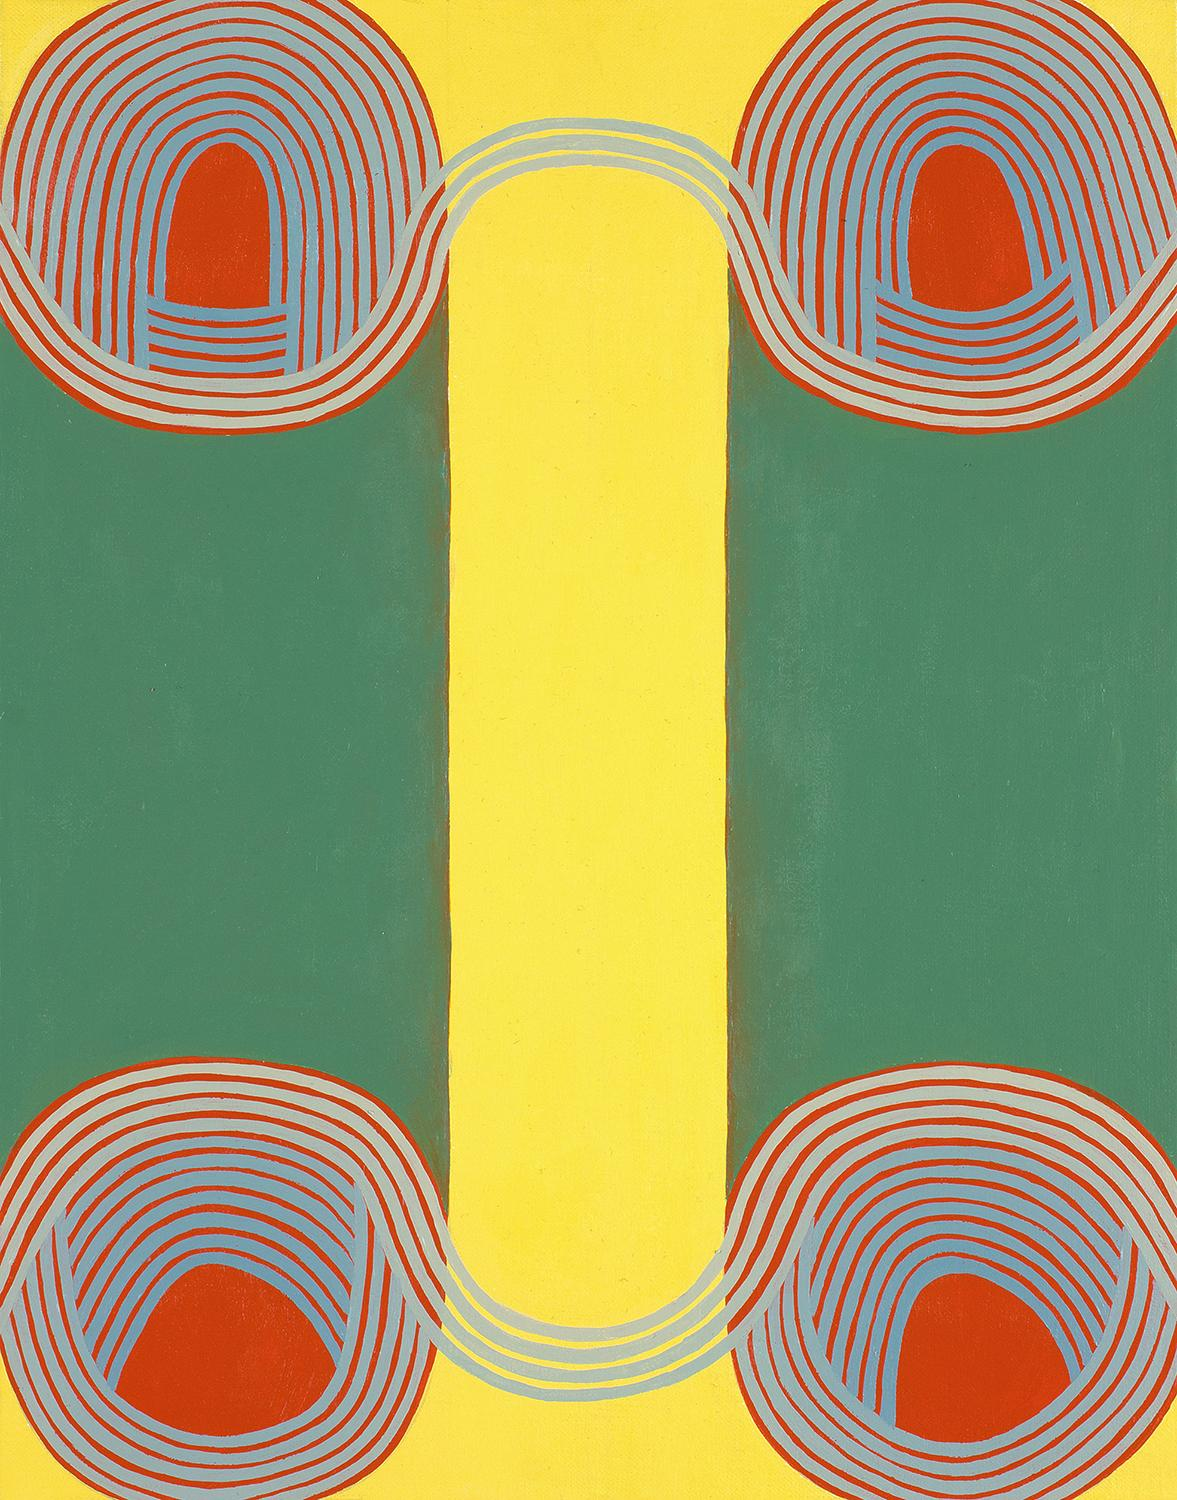 Twins (Graphic Abstract Painting on Linen in Green, Red and Yellow)